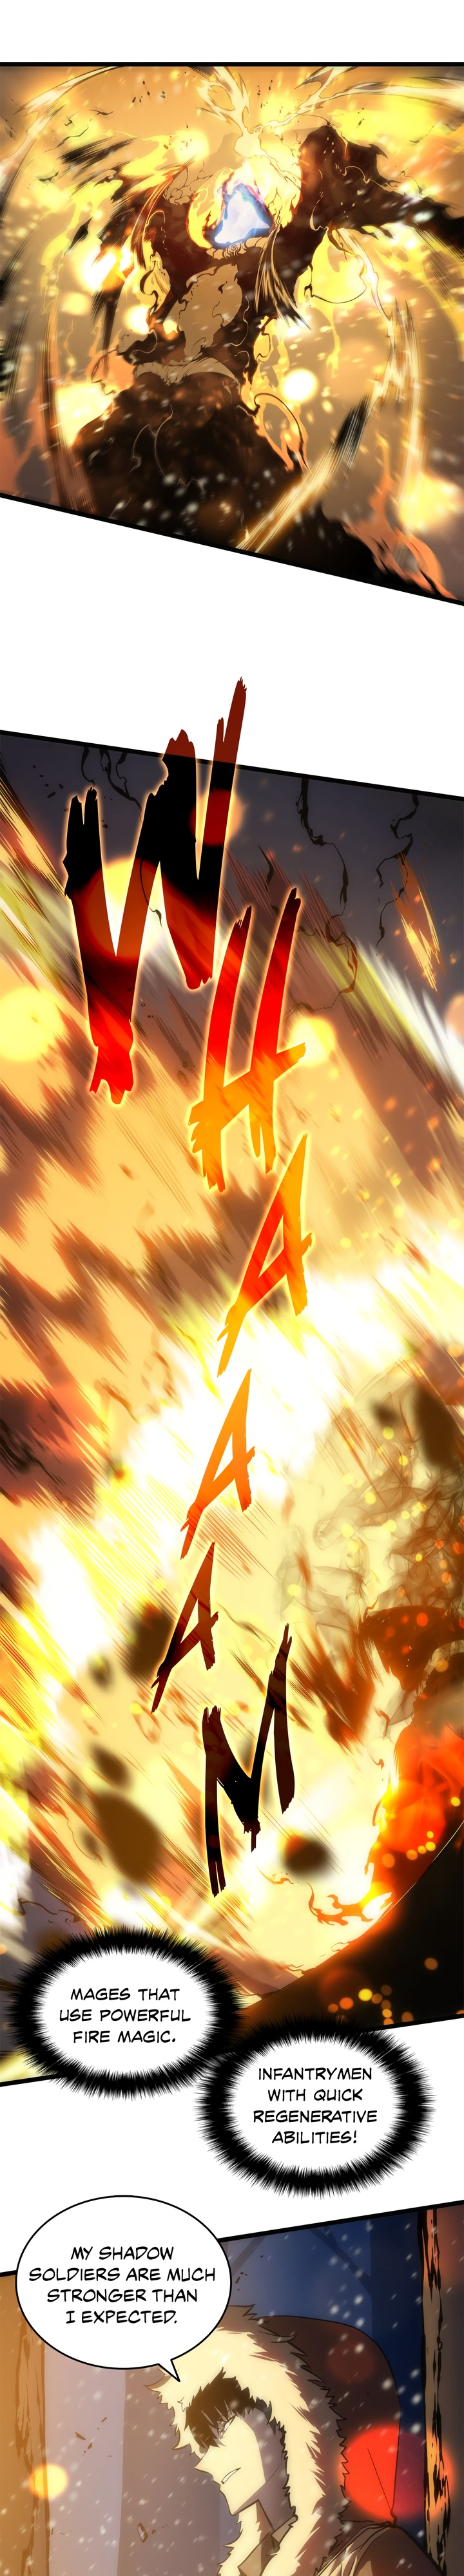 Solo Leveling, Chapter 51 image 007